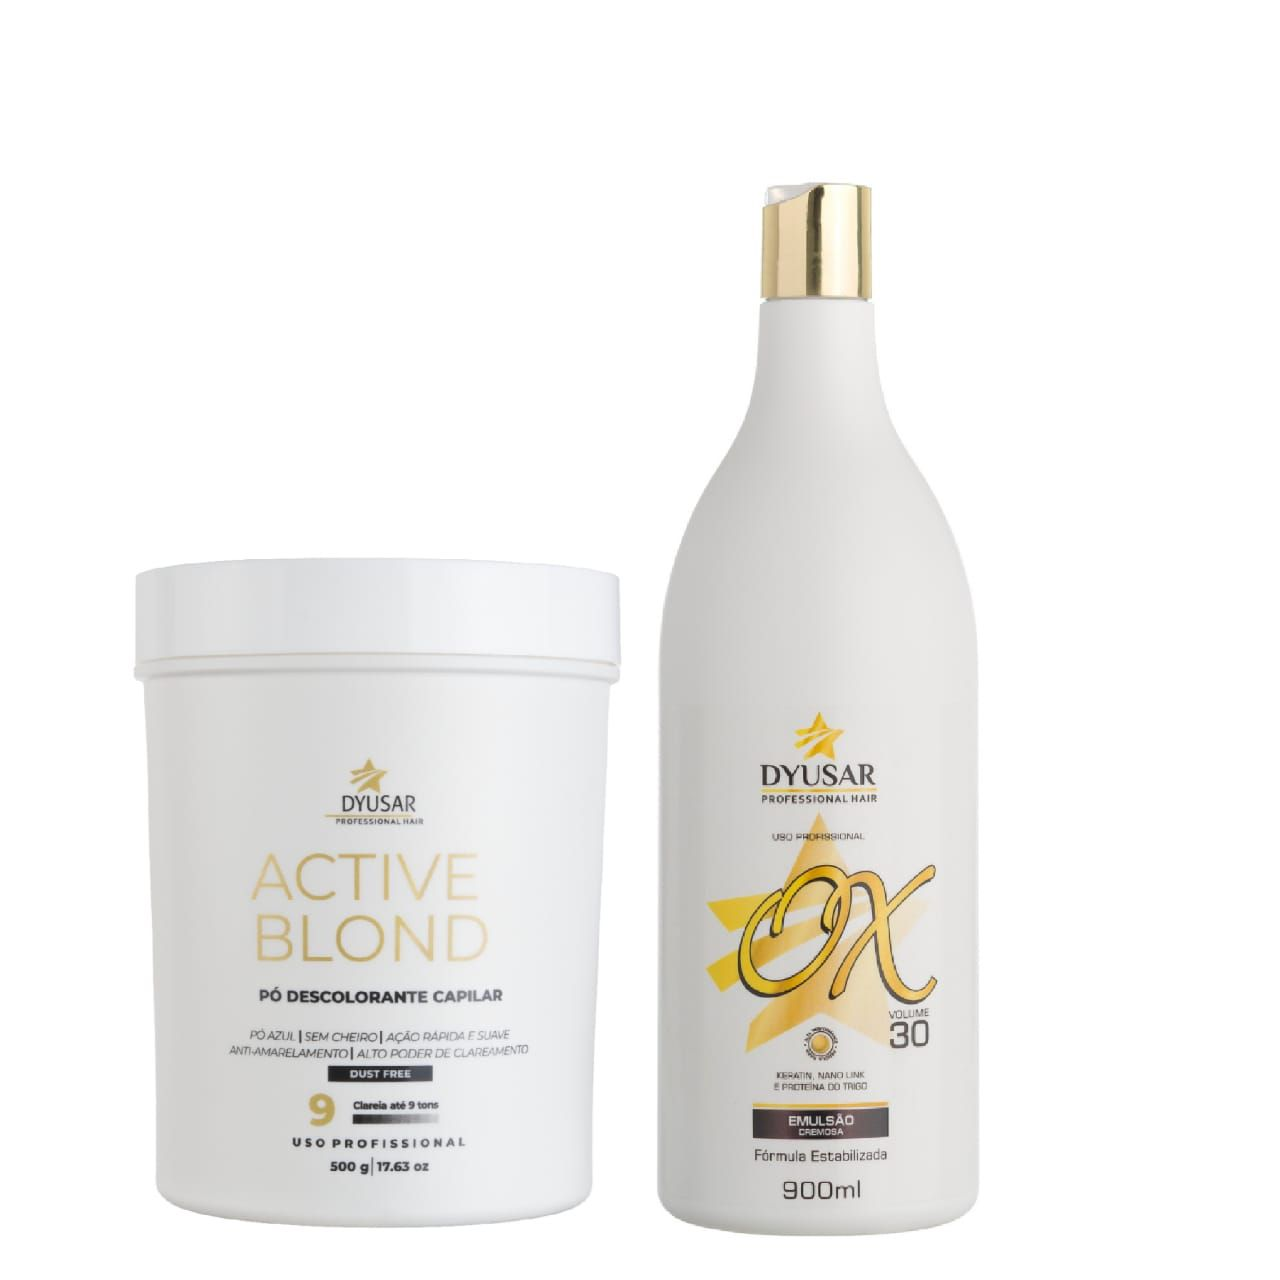 Kit Pó Active Blond+ OX 30 Volumes DYUSAR